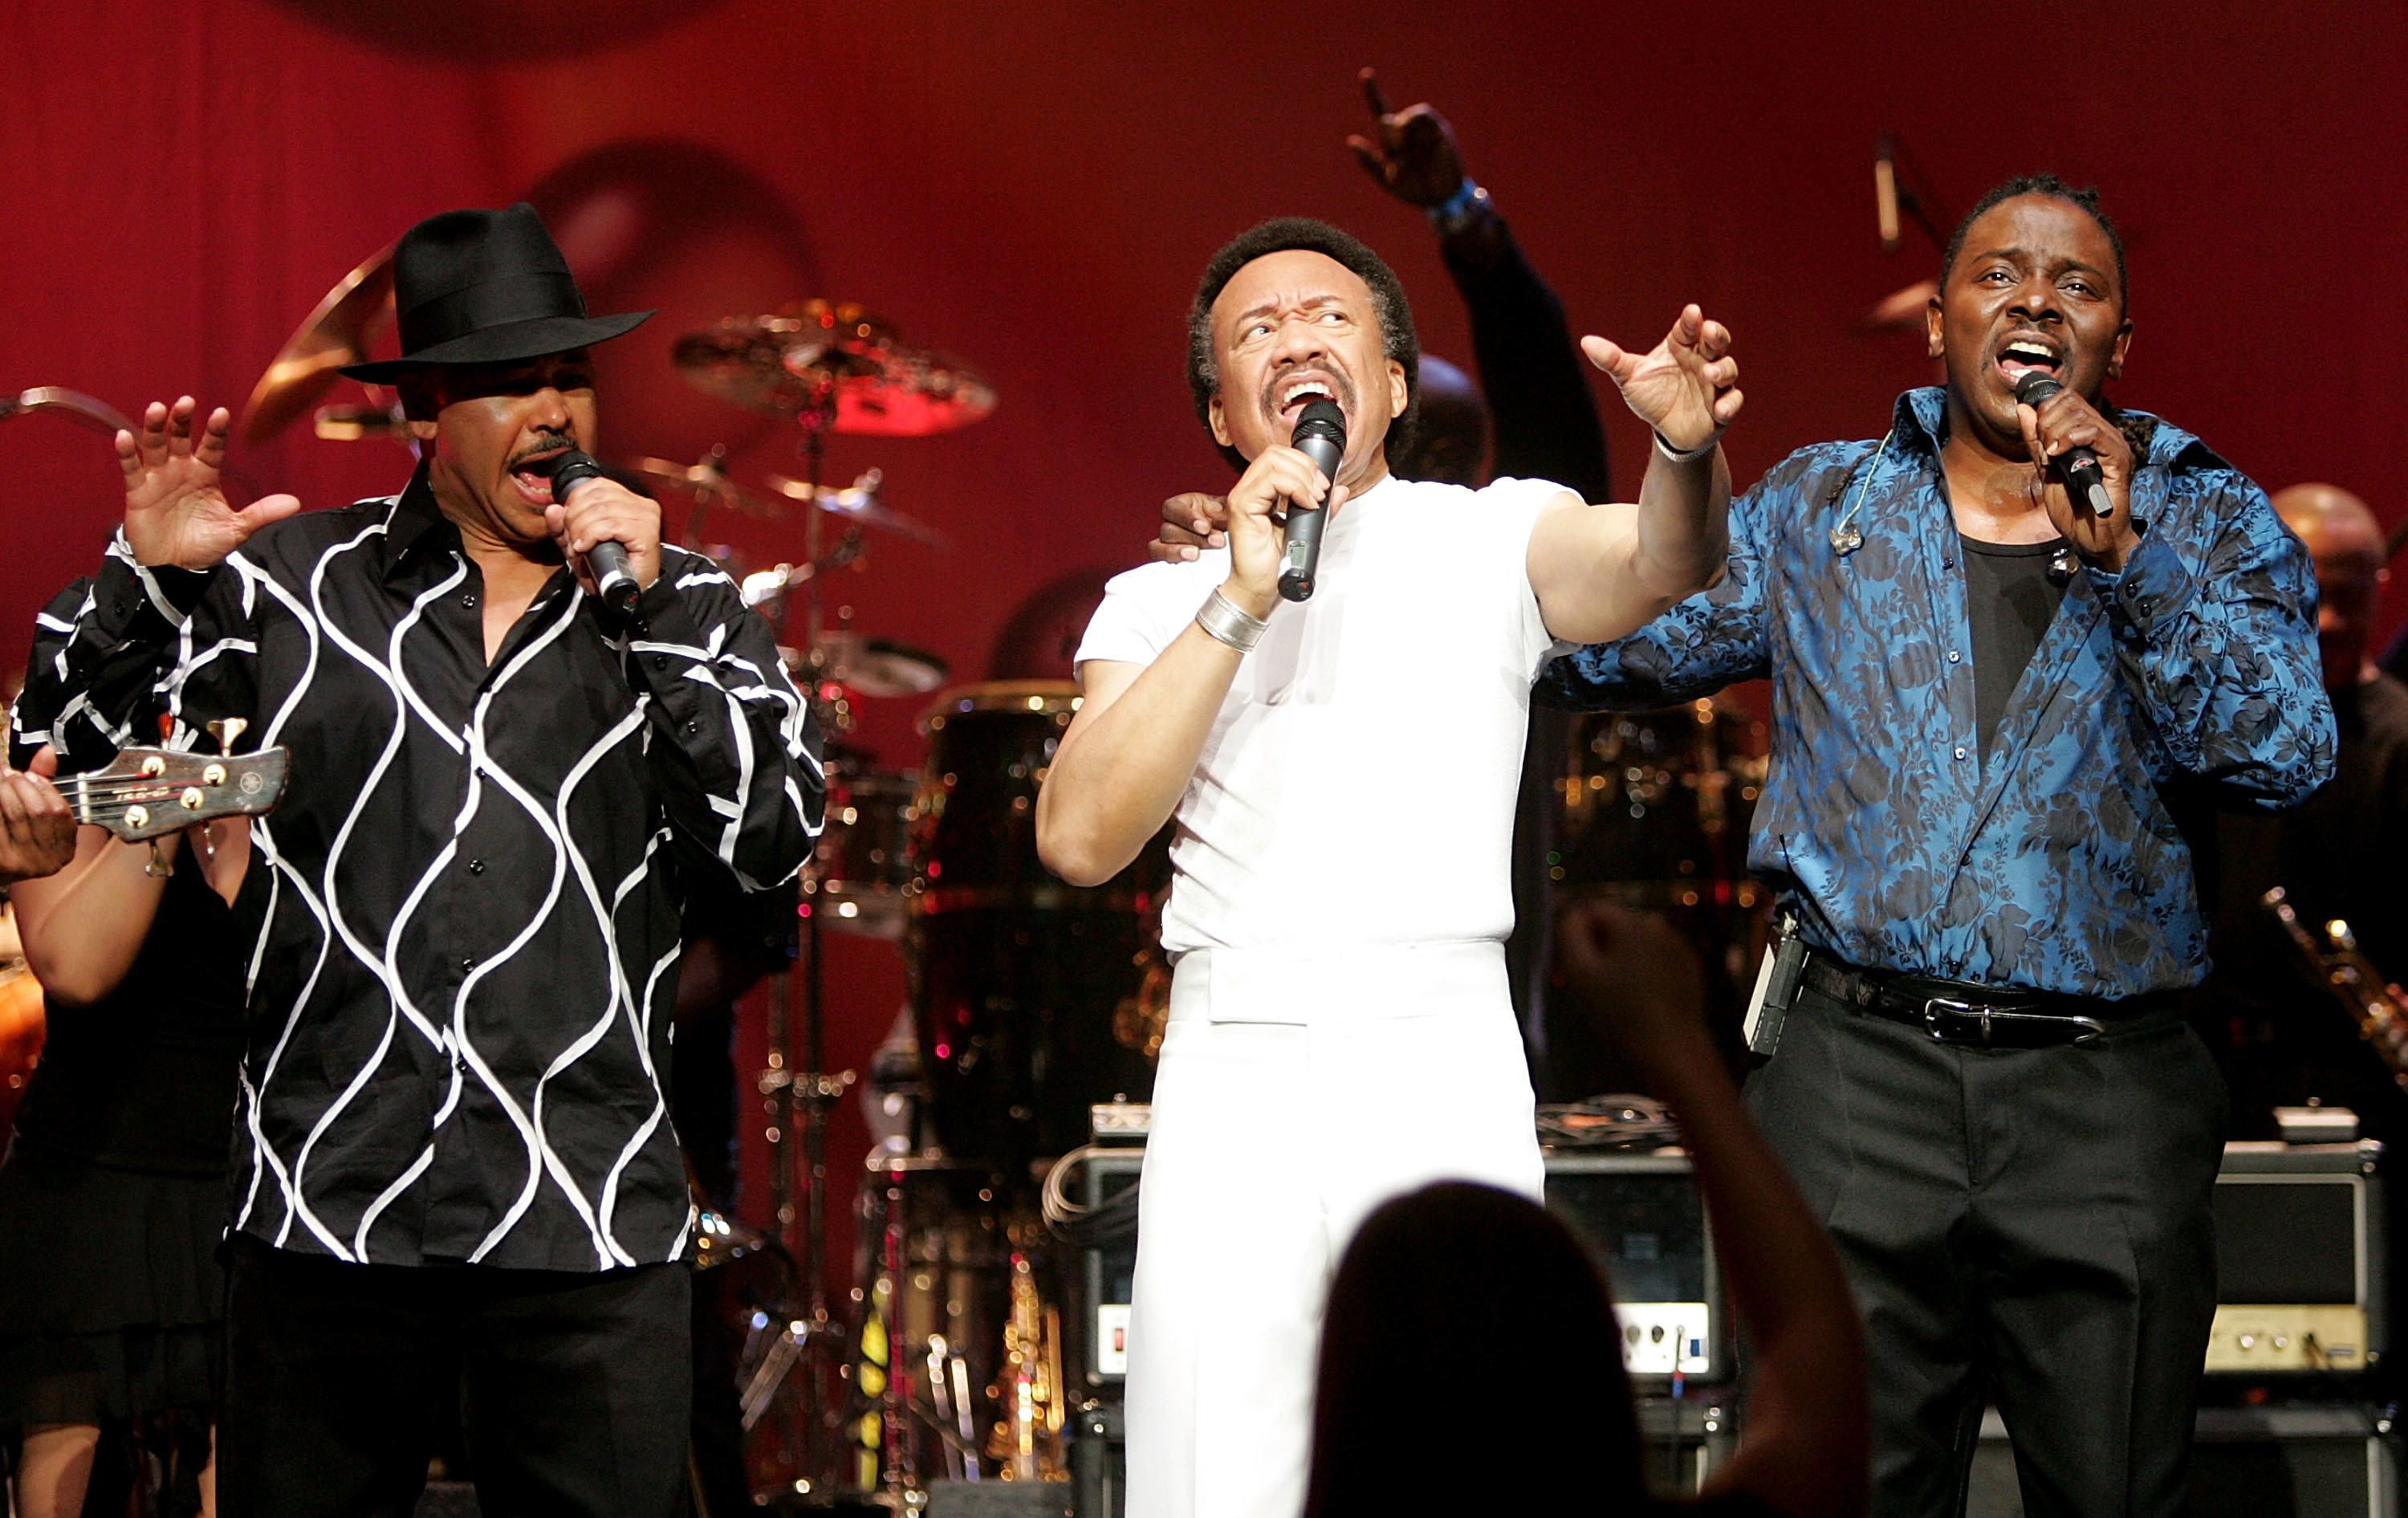 Earth, Wind & Fire performing onstage | Source: Getty Images/GlobalImagesUkraine